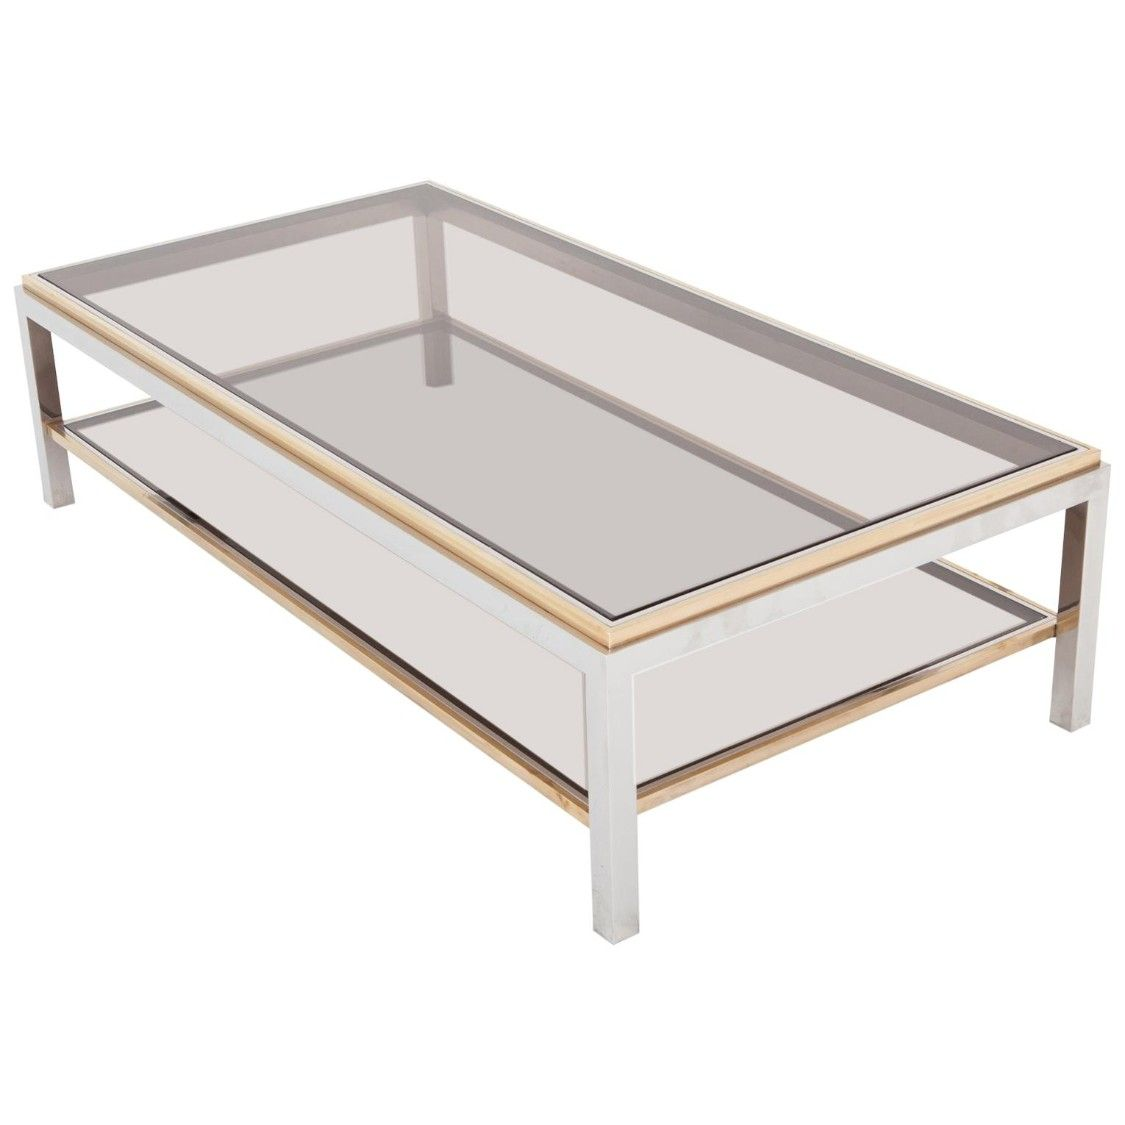 Willy Rizzo Rectangular Coffee Table In Brass Chrome And Glass